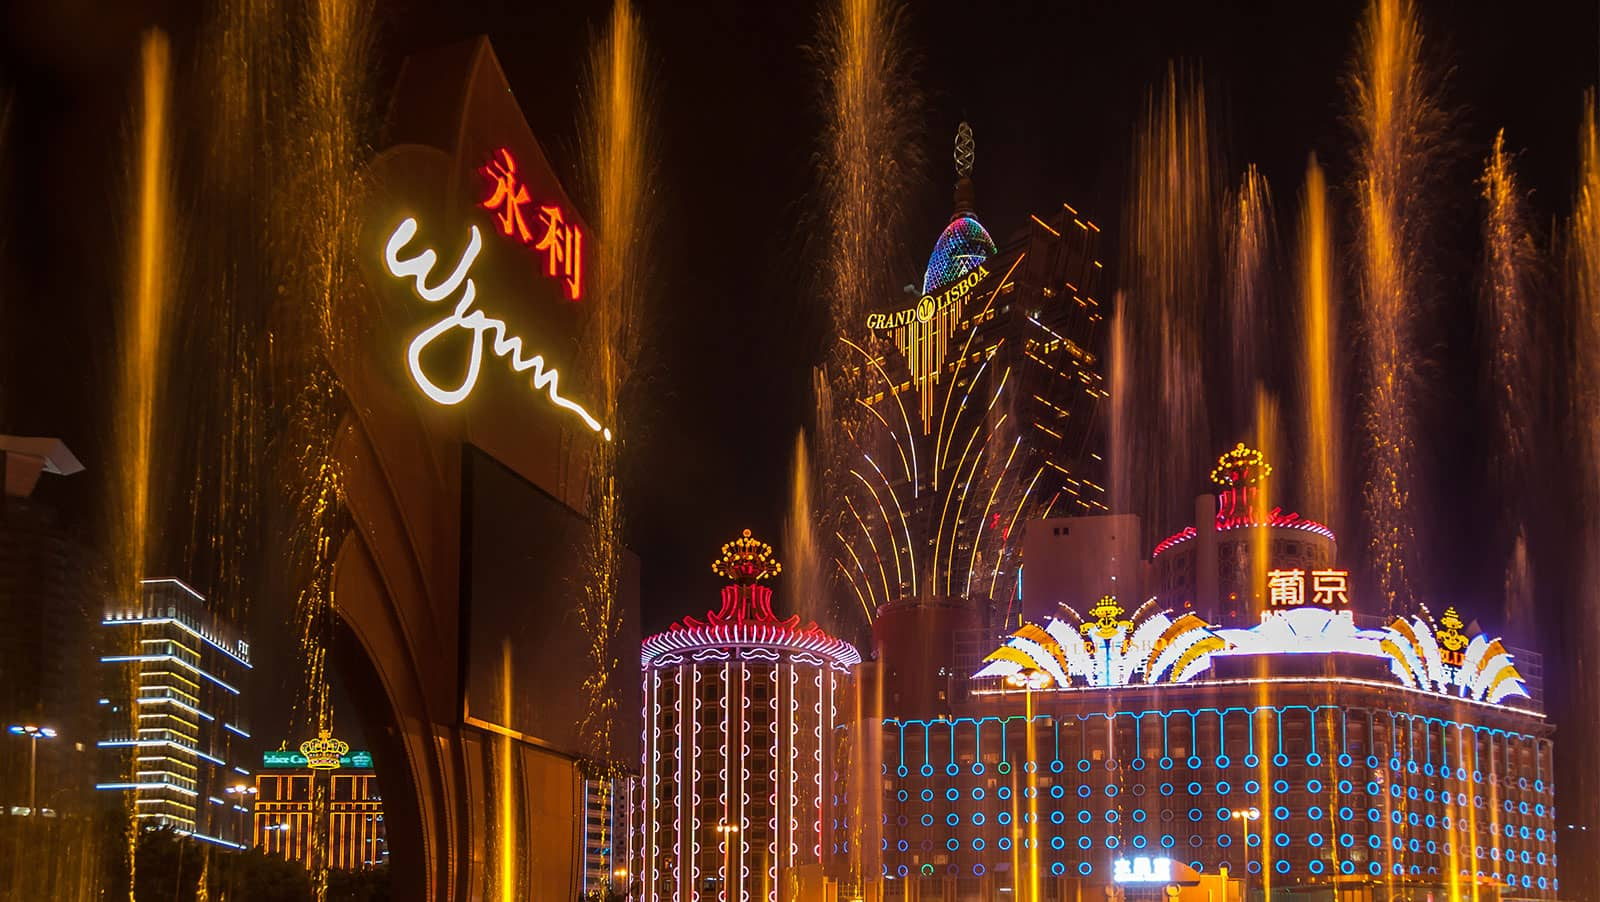 wynn-macau-name-used-in-8-million-scam-in-china-min